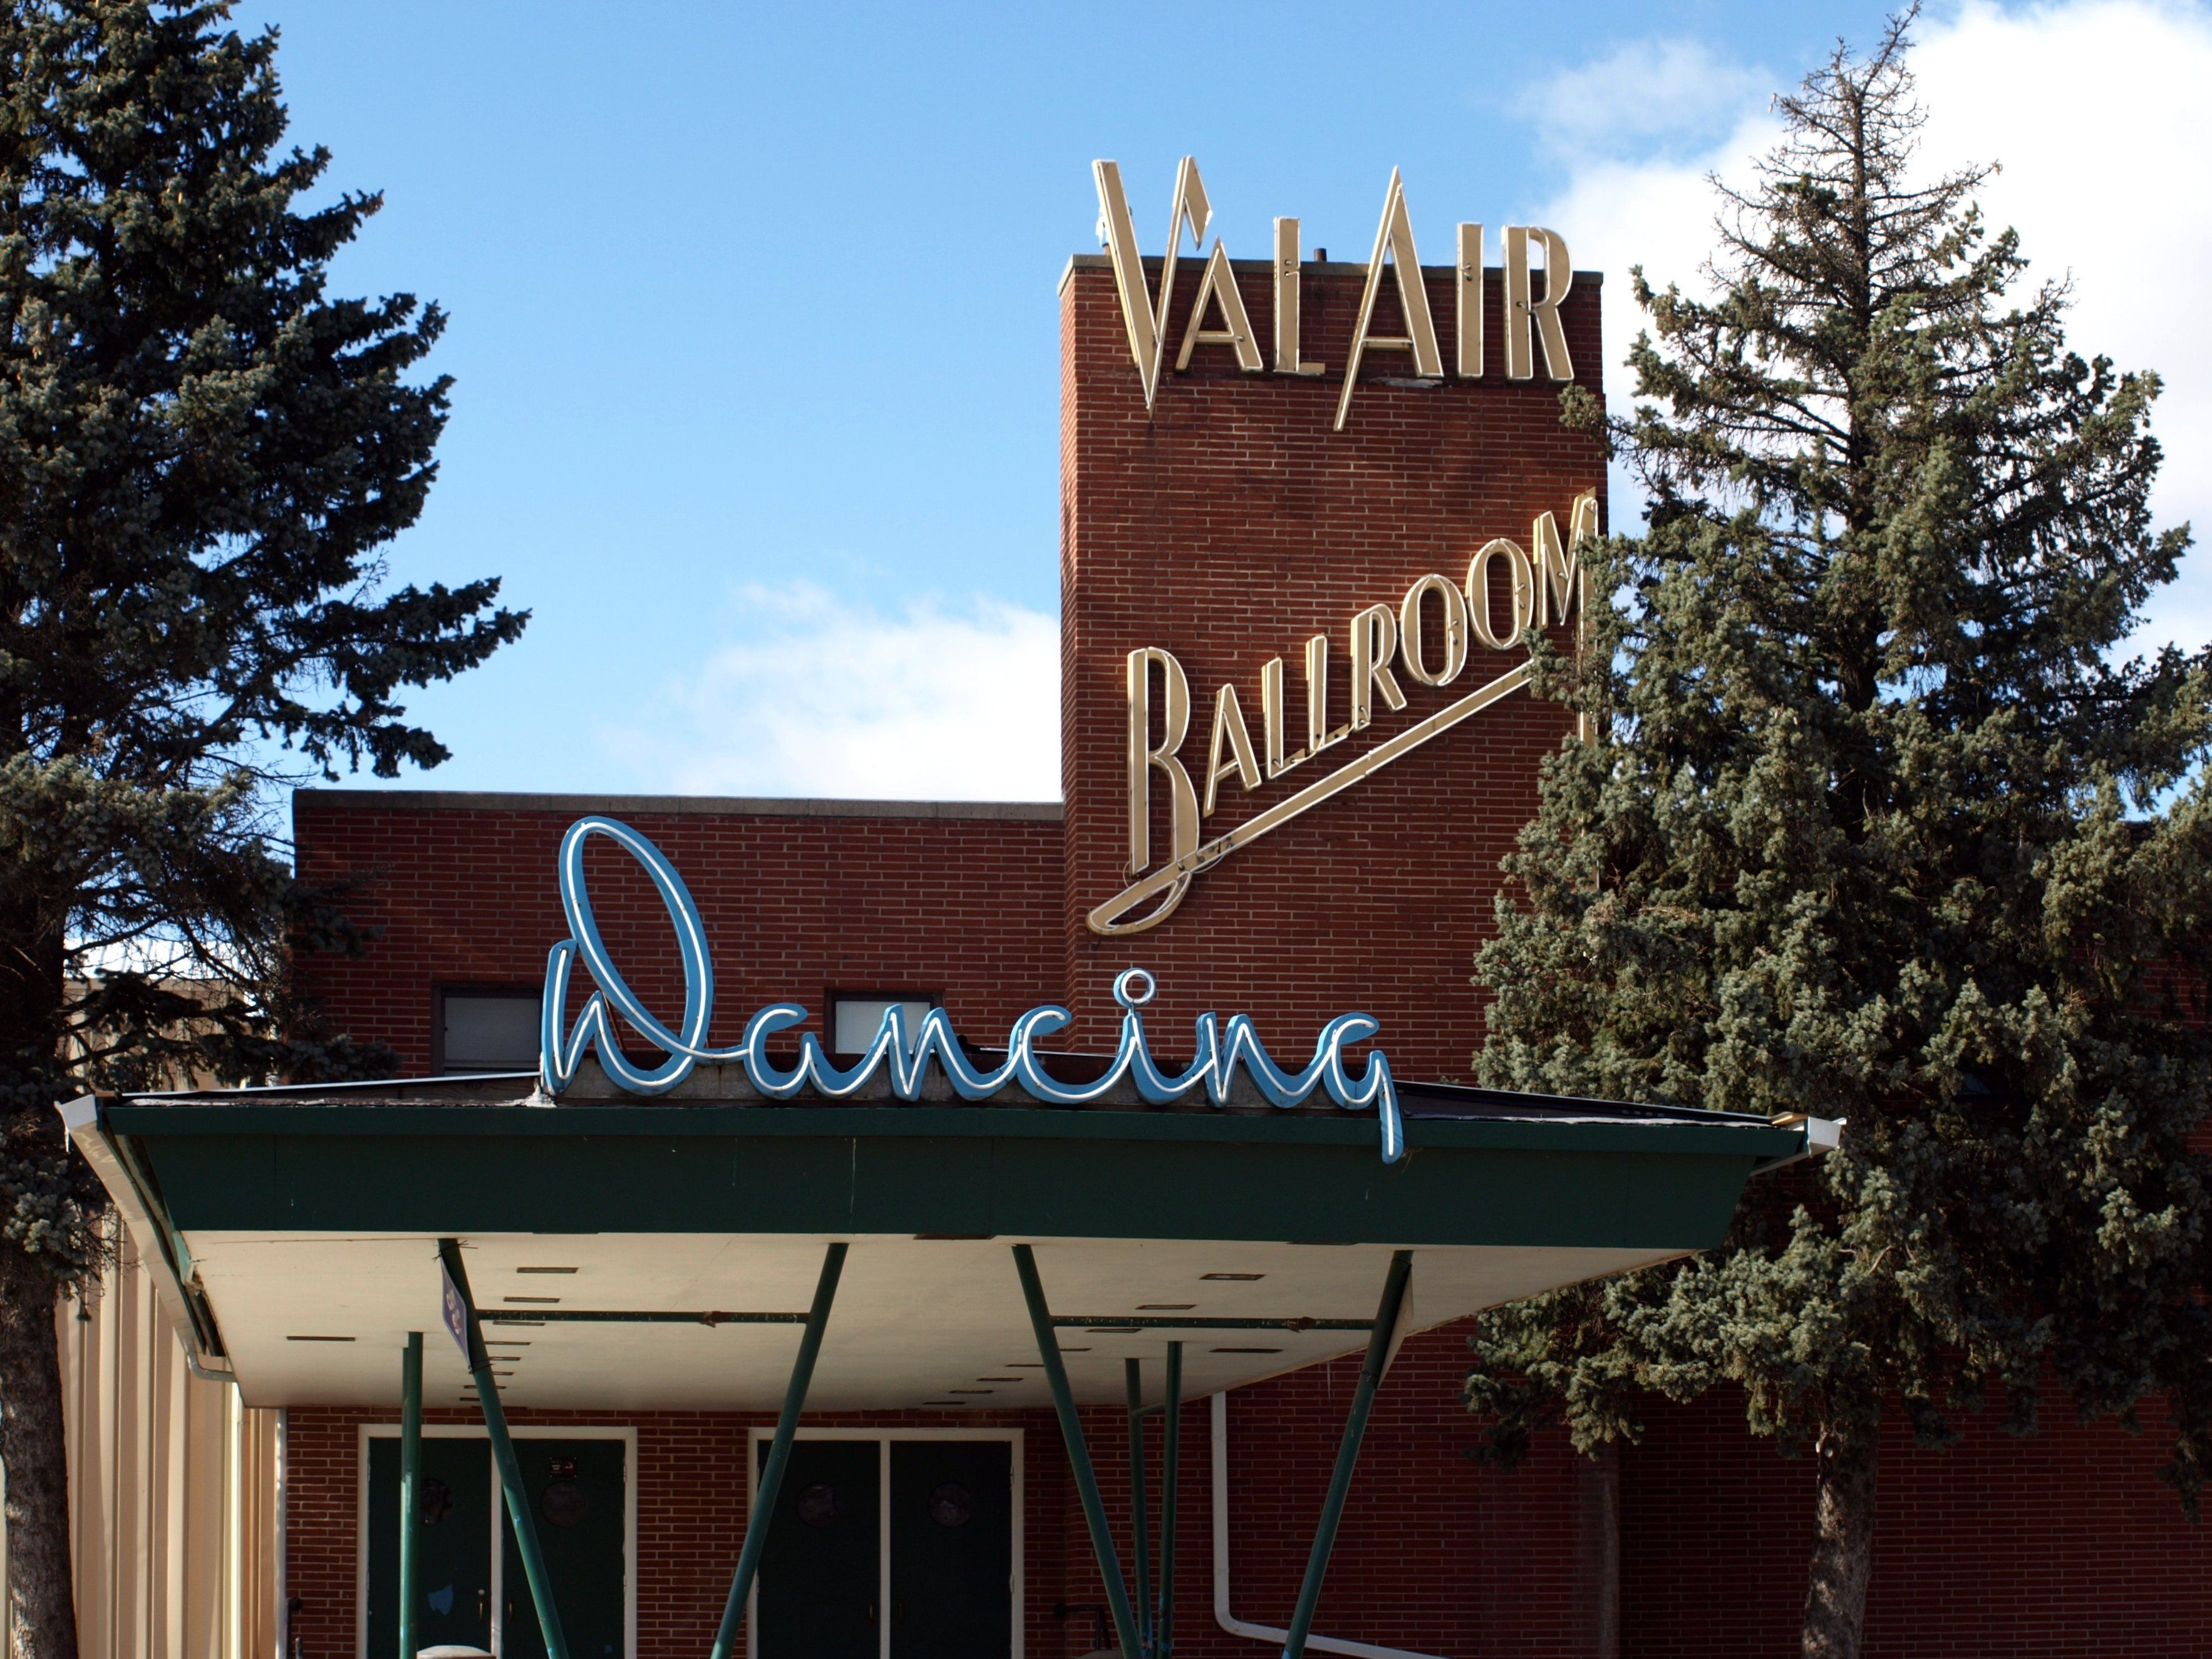 Back when the ballroom was the destination and not a